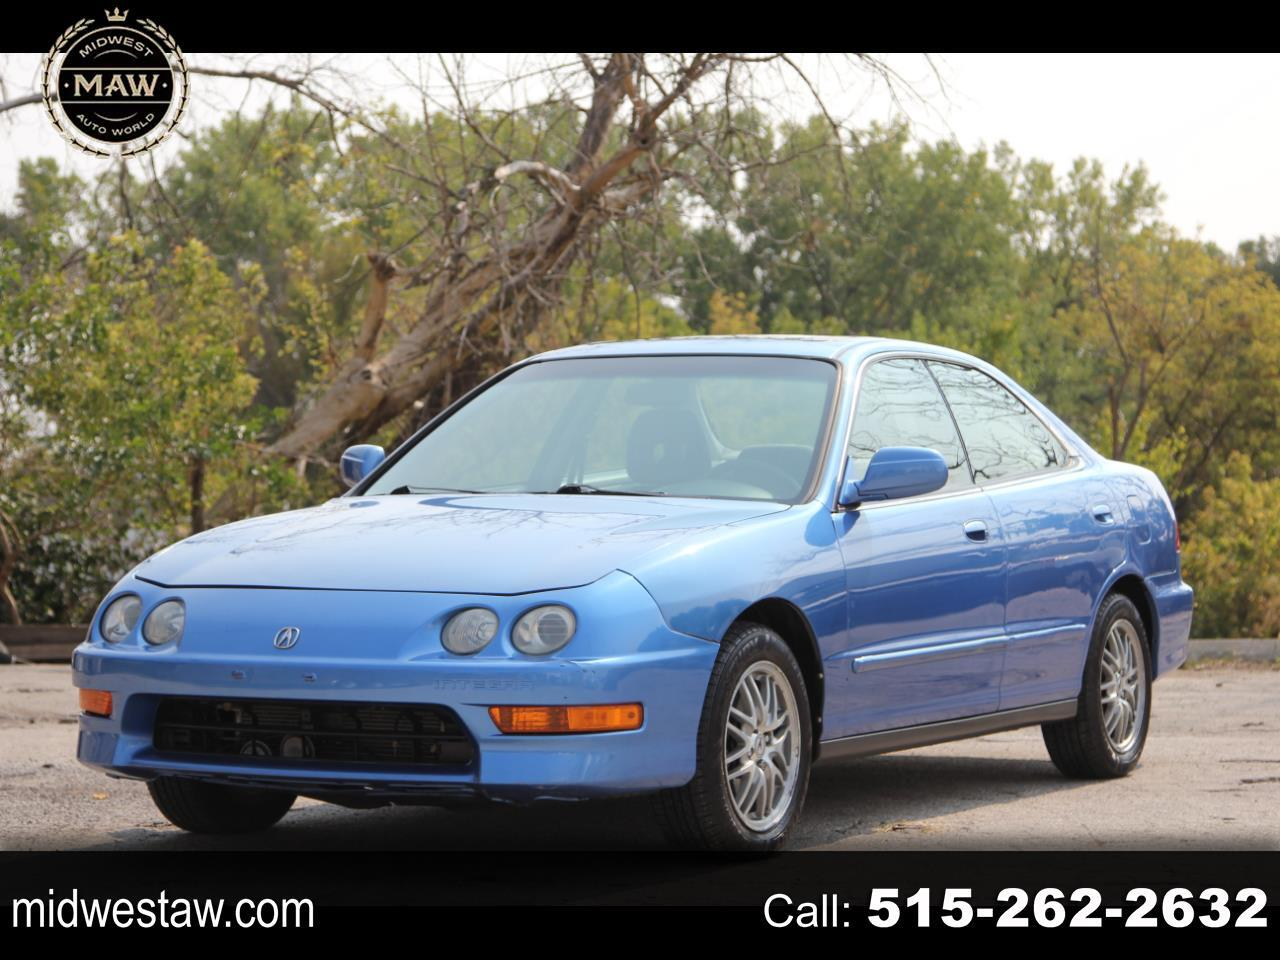 Used 2000 Acura Integra Ls Sedan For Sale In Des Moines Ia 50317 Midwest Auto World Llc